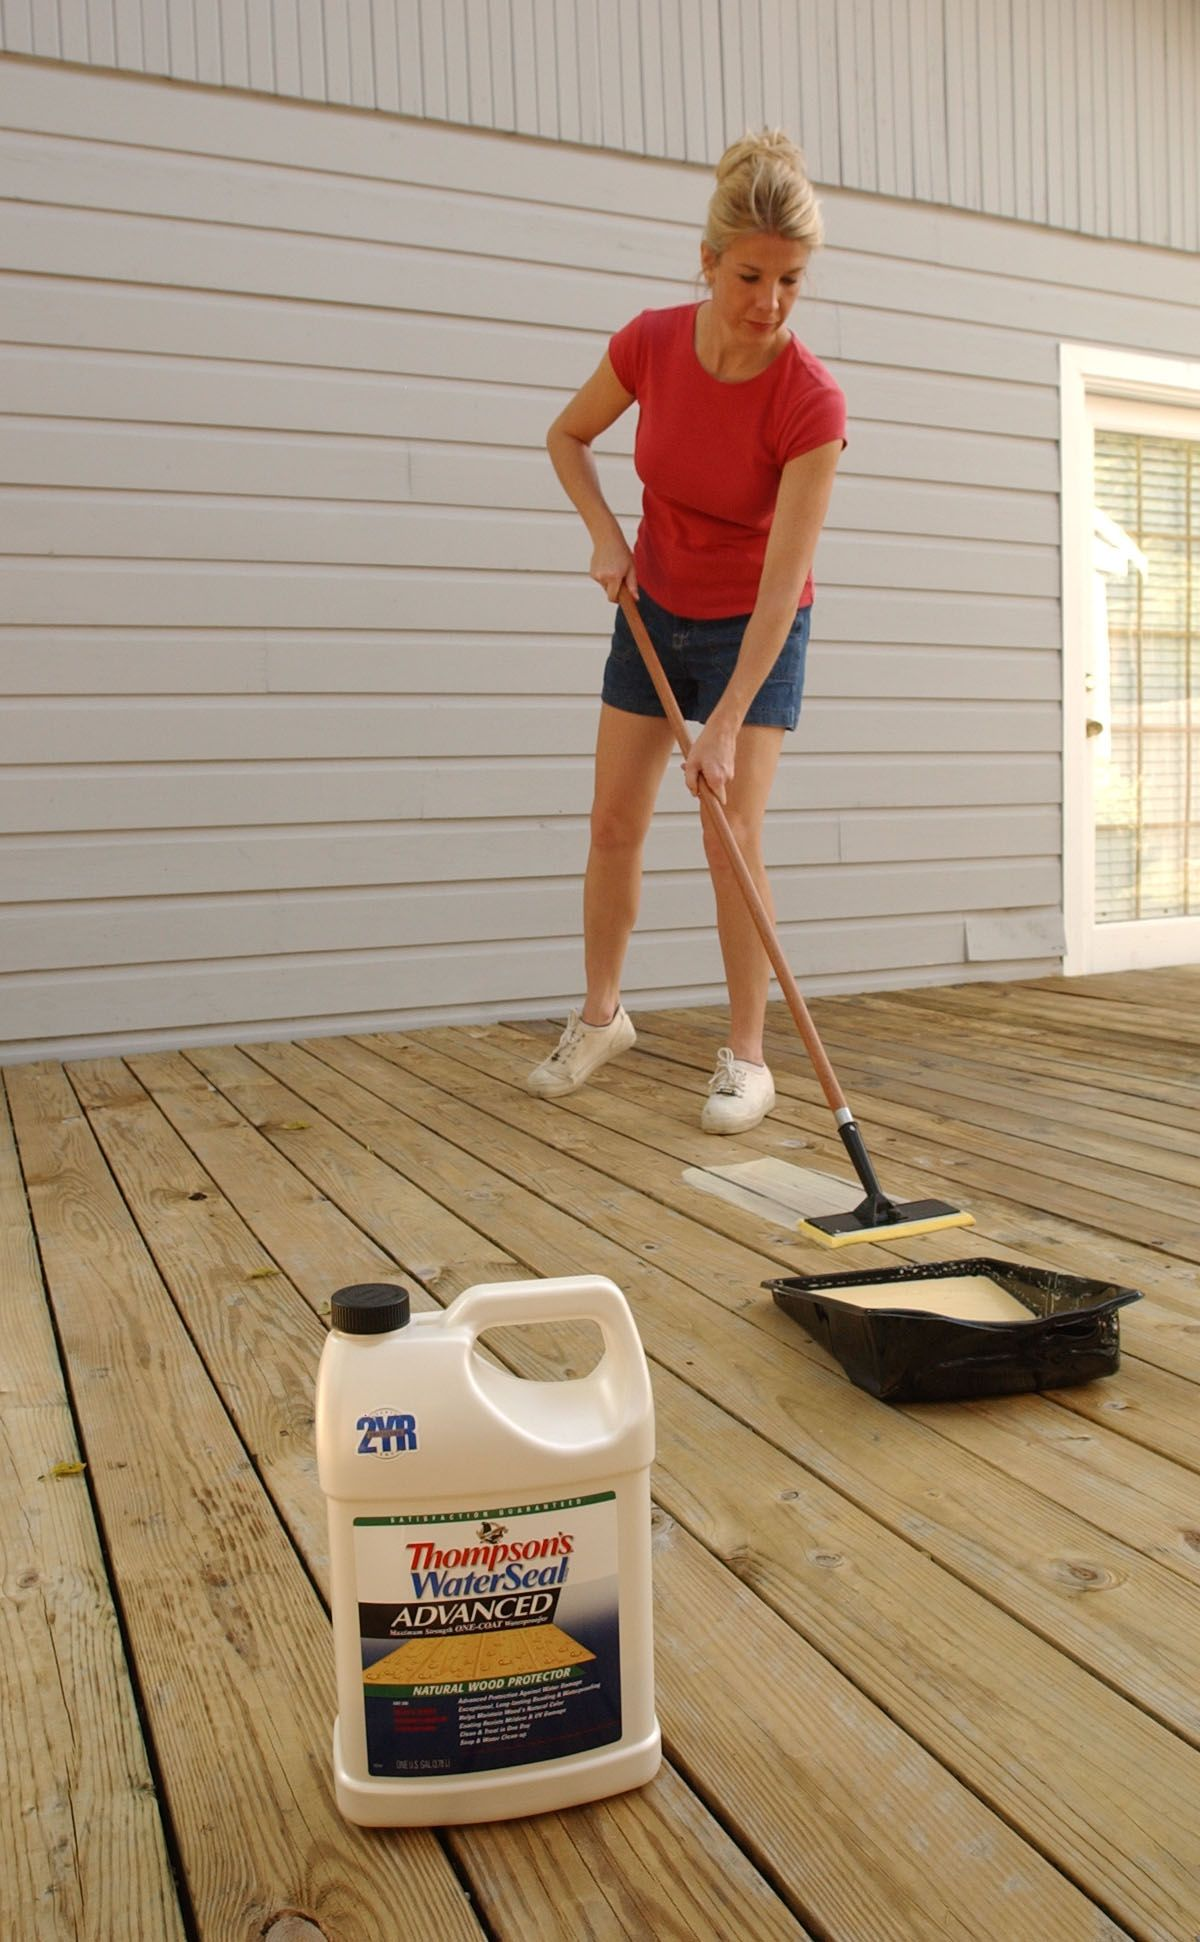 Thompsons water seal advanced wood protector can be applied to thompsons waterseal offers waterproofing products to care for your wood deck and other exterior surfaces baanklon Gallery